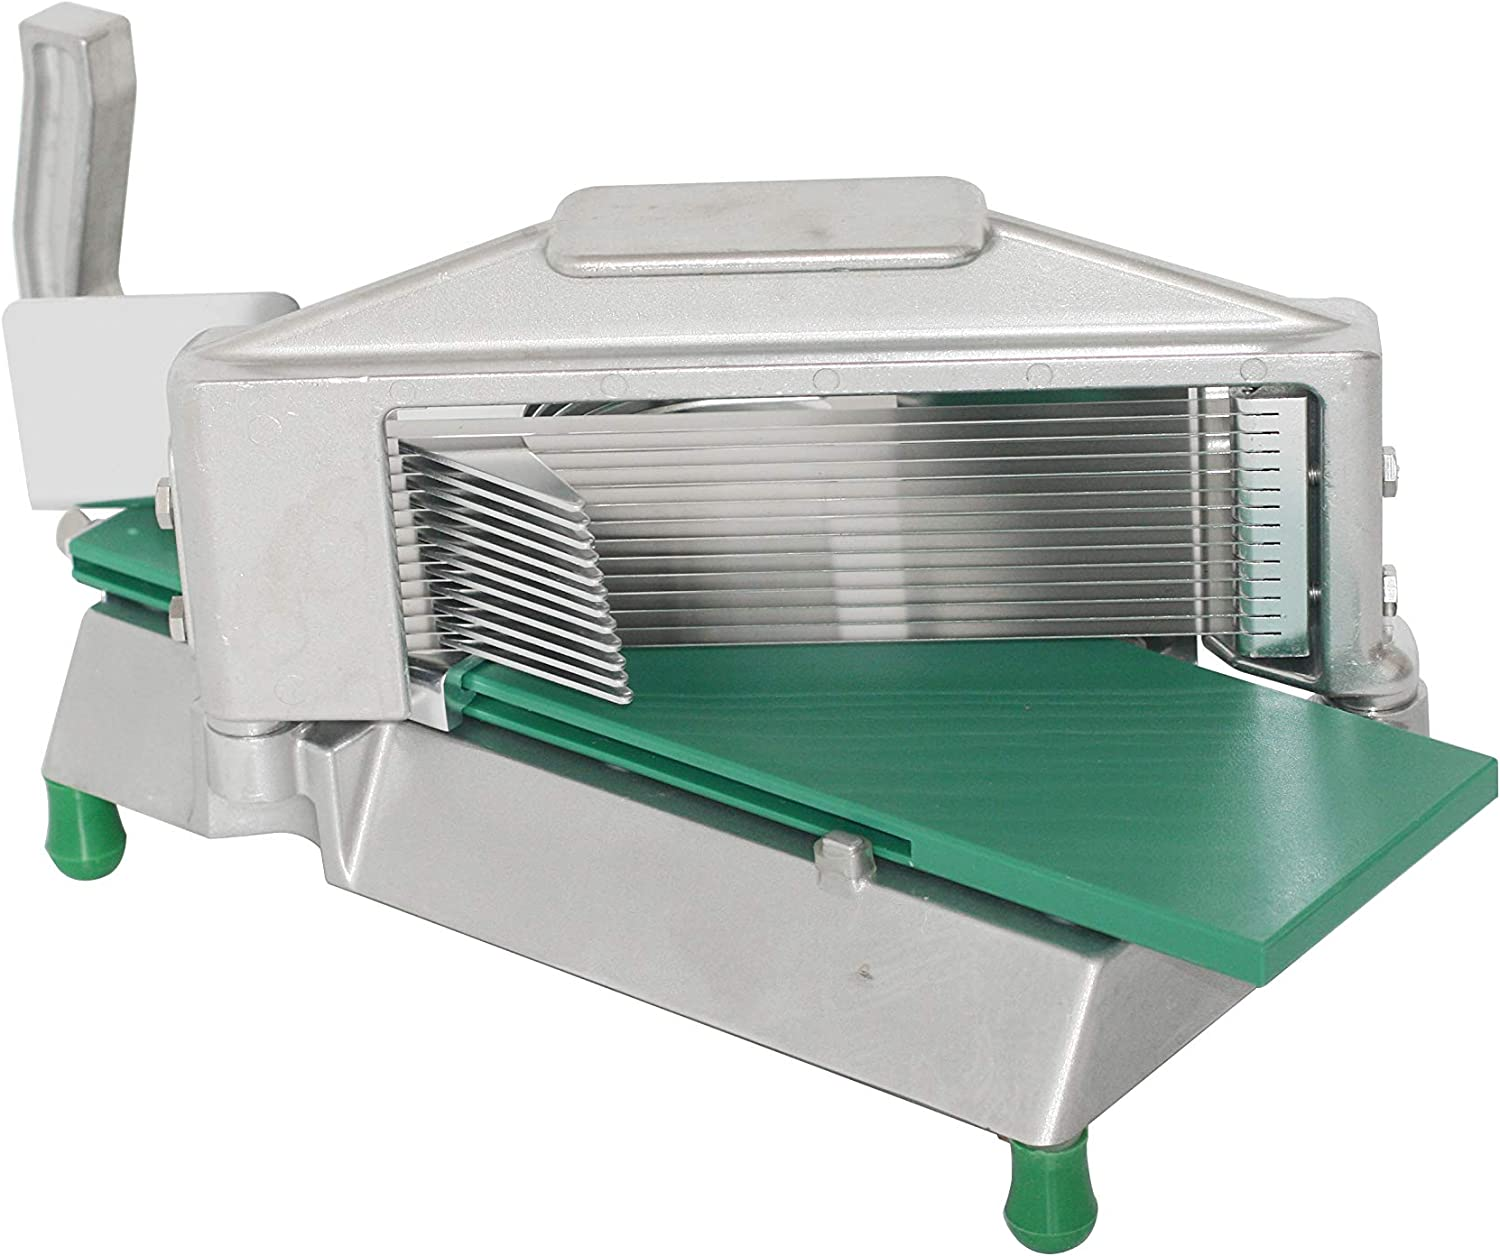 Caspian Tomato Slicer 3 inches 1 year warranty Vegetable Luxury 16 Cutter